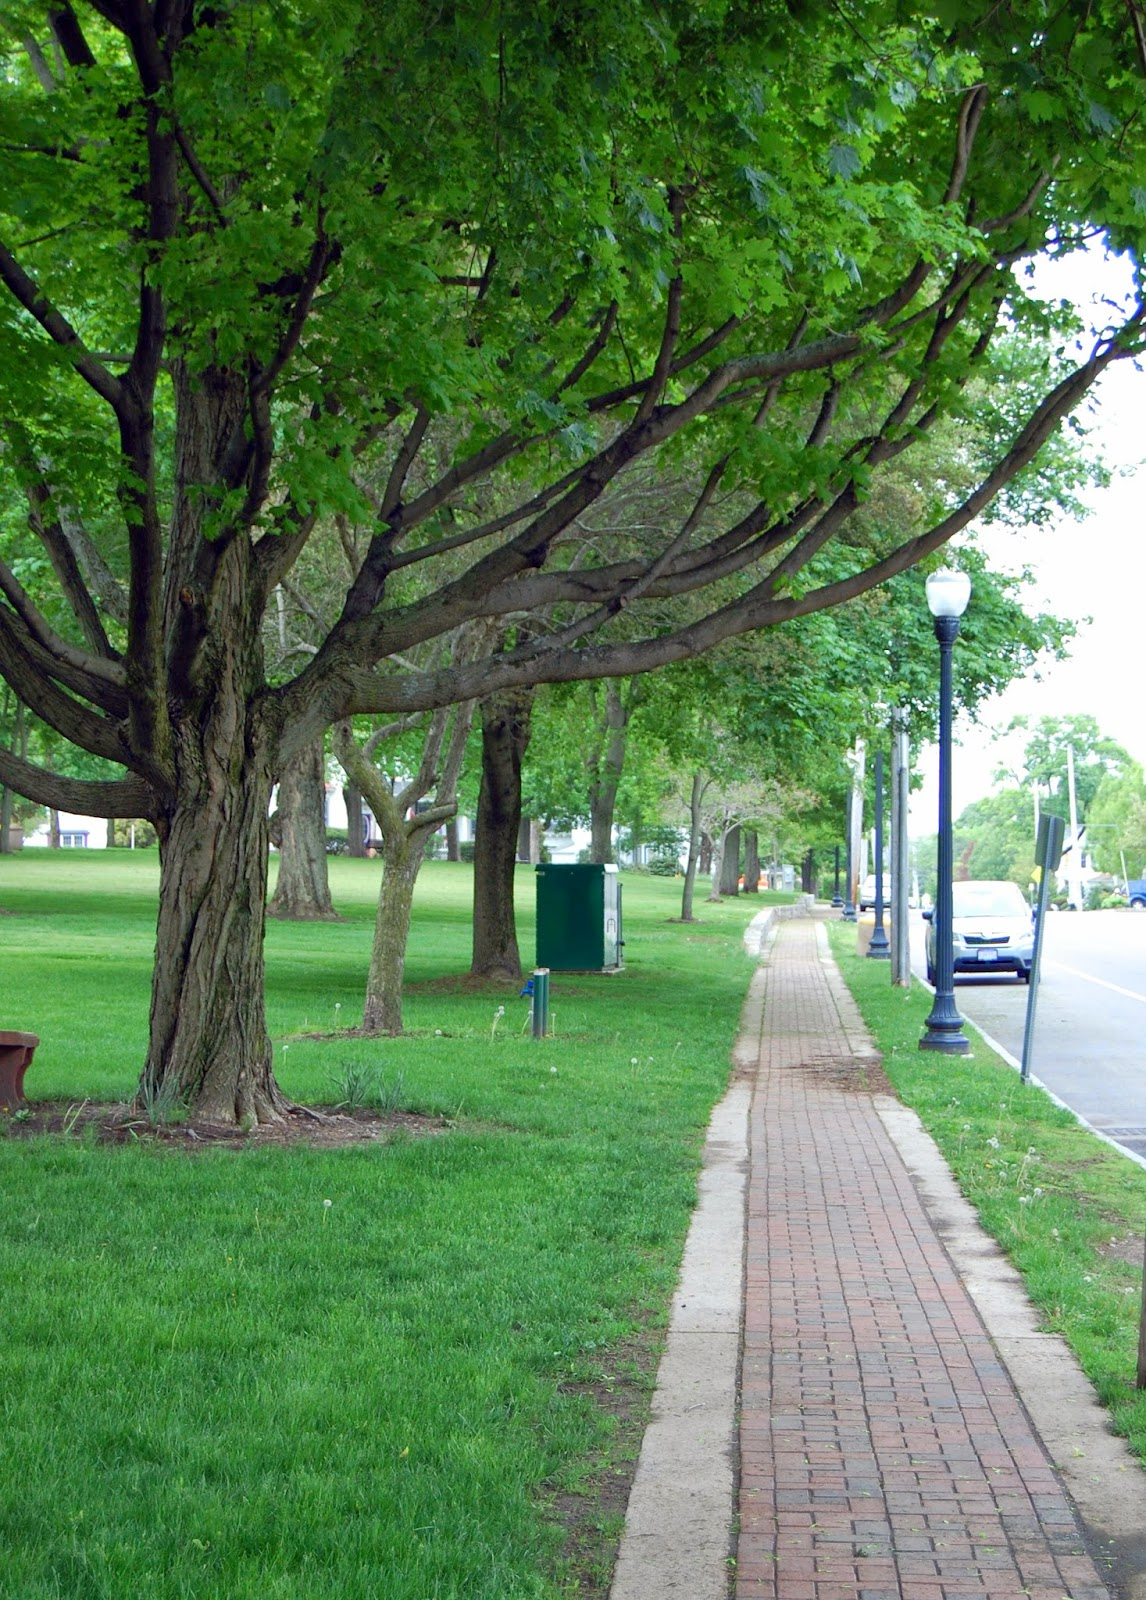 Union St sidewalk lined with trees